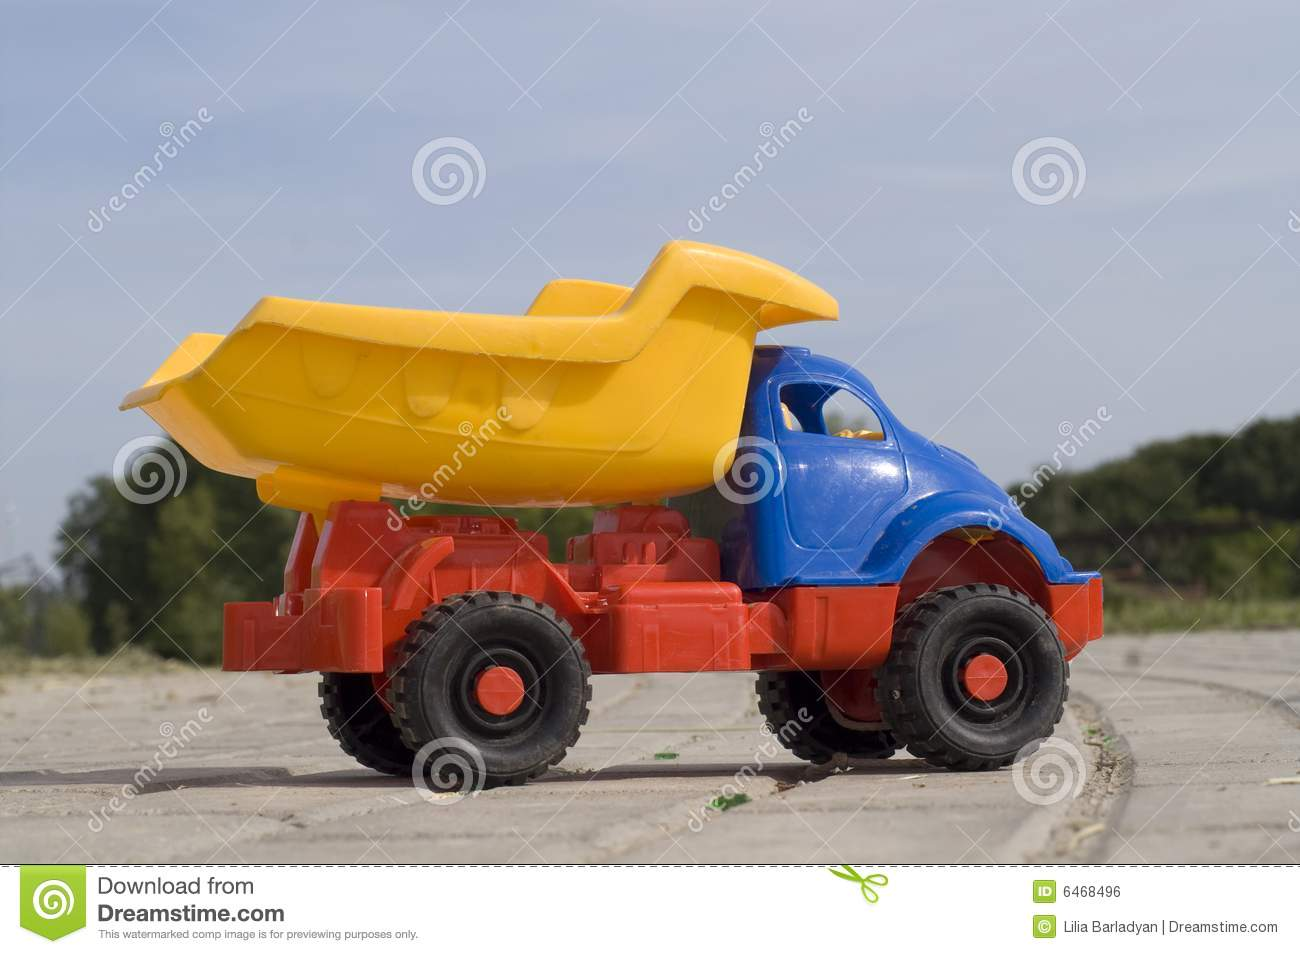 Baby Truck Baby Toy Dump Truck Royalty Free Stock Image Image 6468496